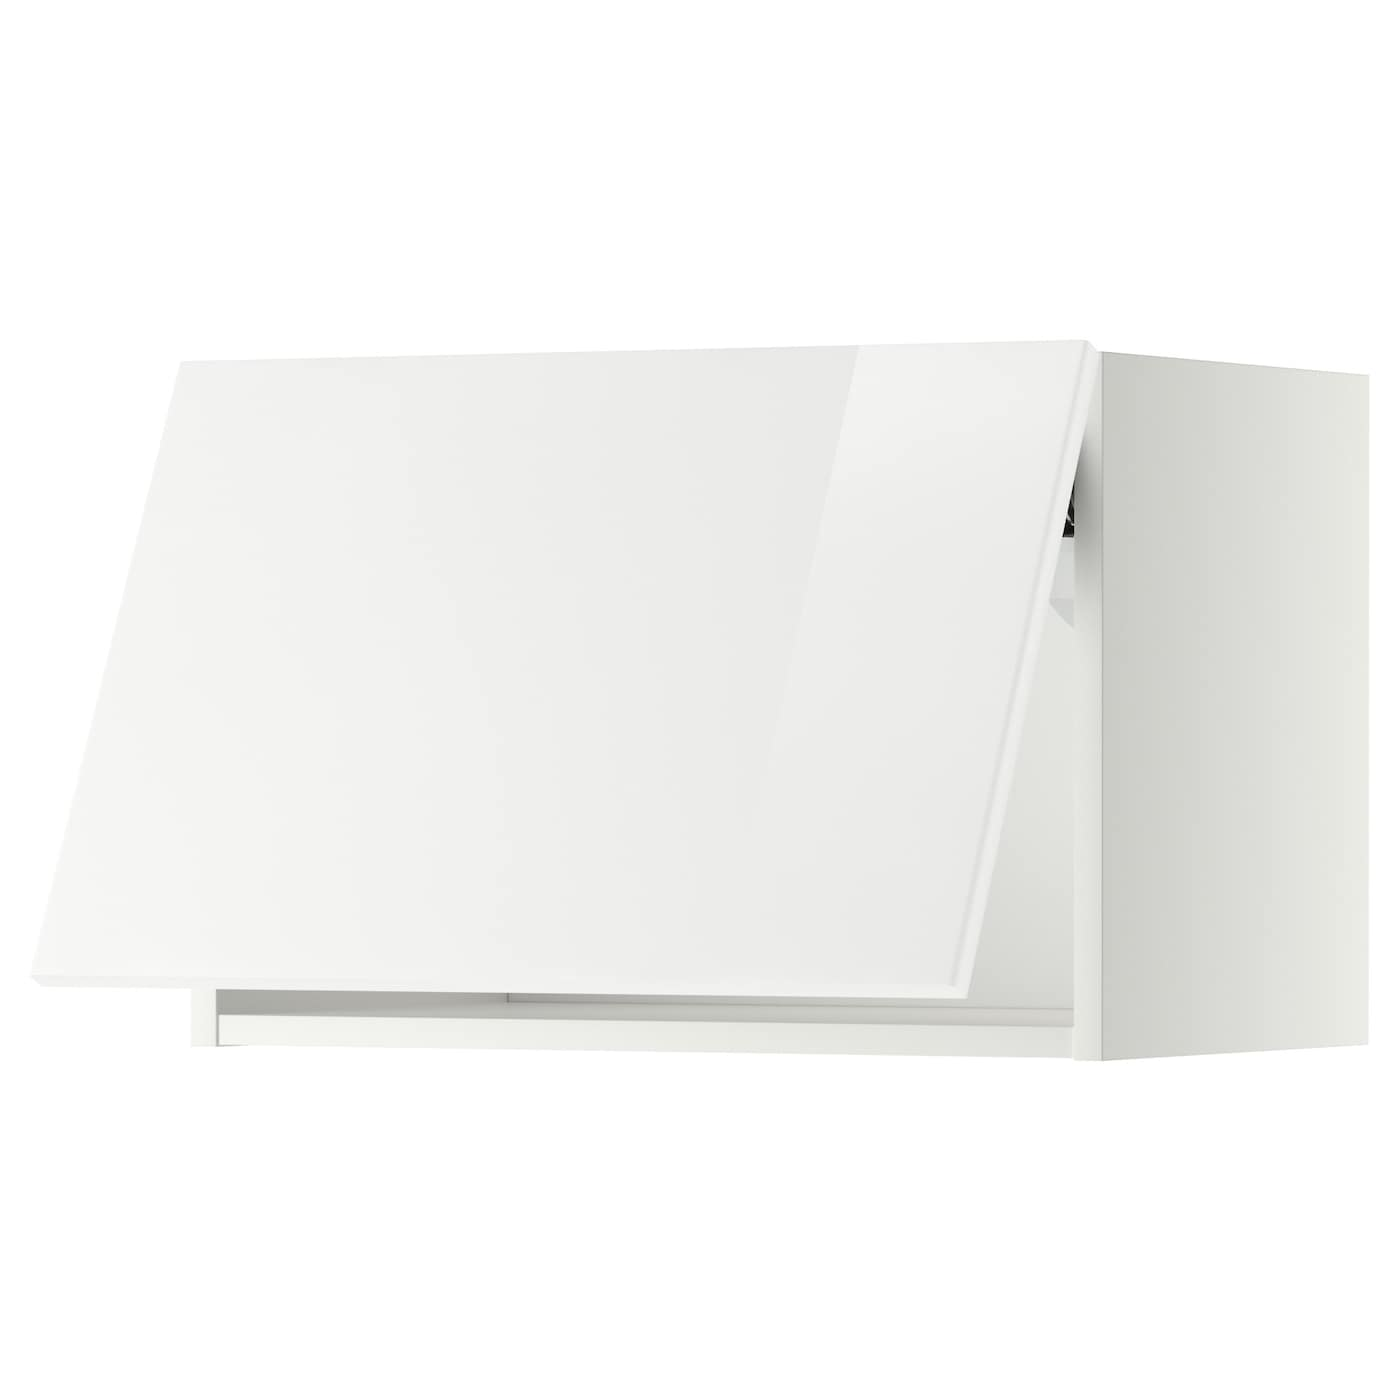 ikea horizontal kitchen cabinets metod wall cabinet horizontal white ringhult white 60 x 40 17603